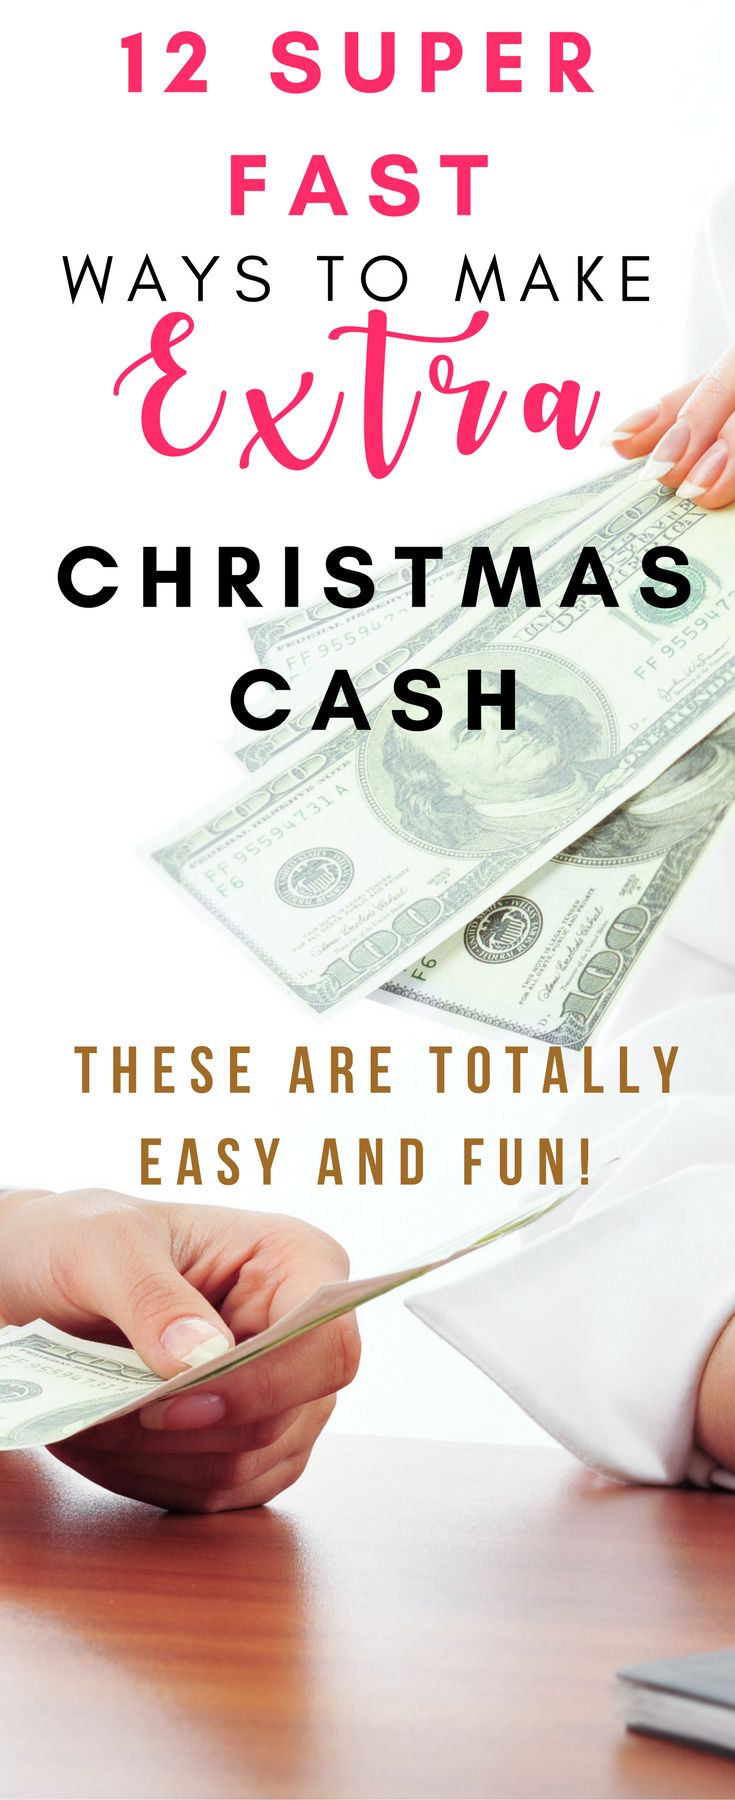 These are all actually super smart ways to make some extra money that you can start right away!